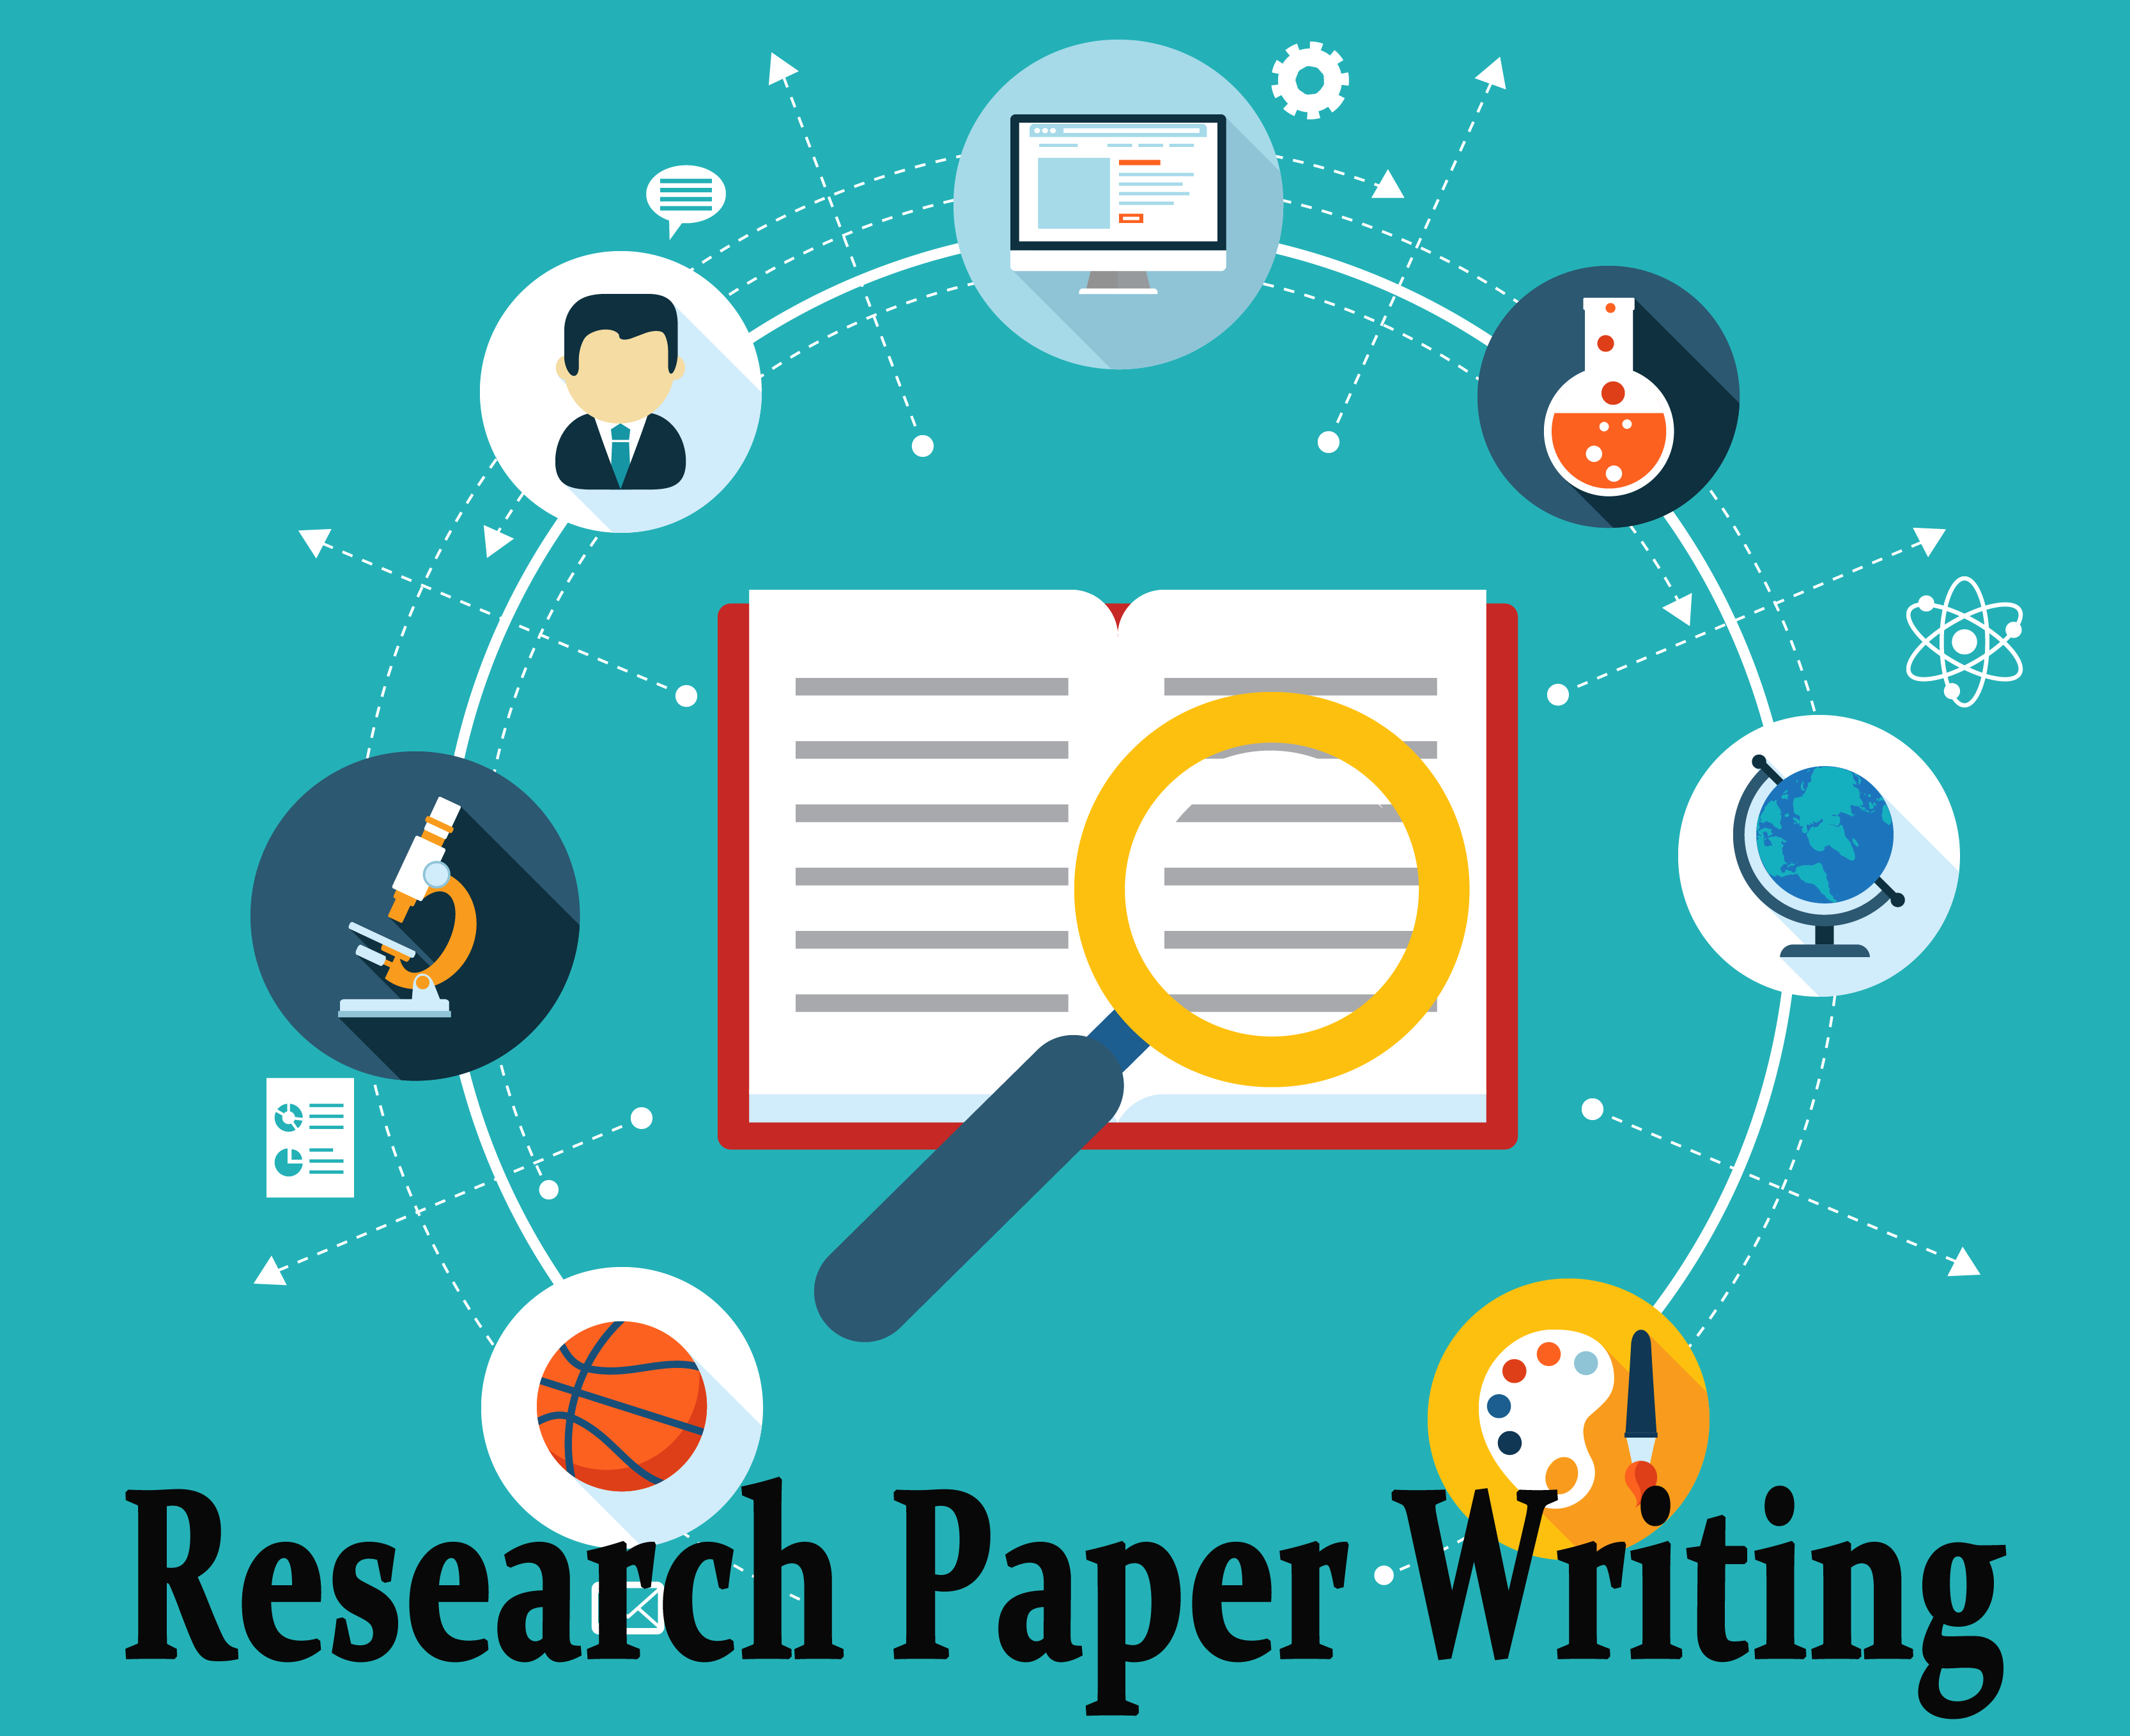 001 503 Effective Research Paper Help With Beautiful Writing Full